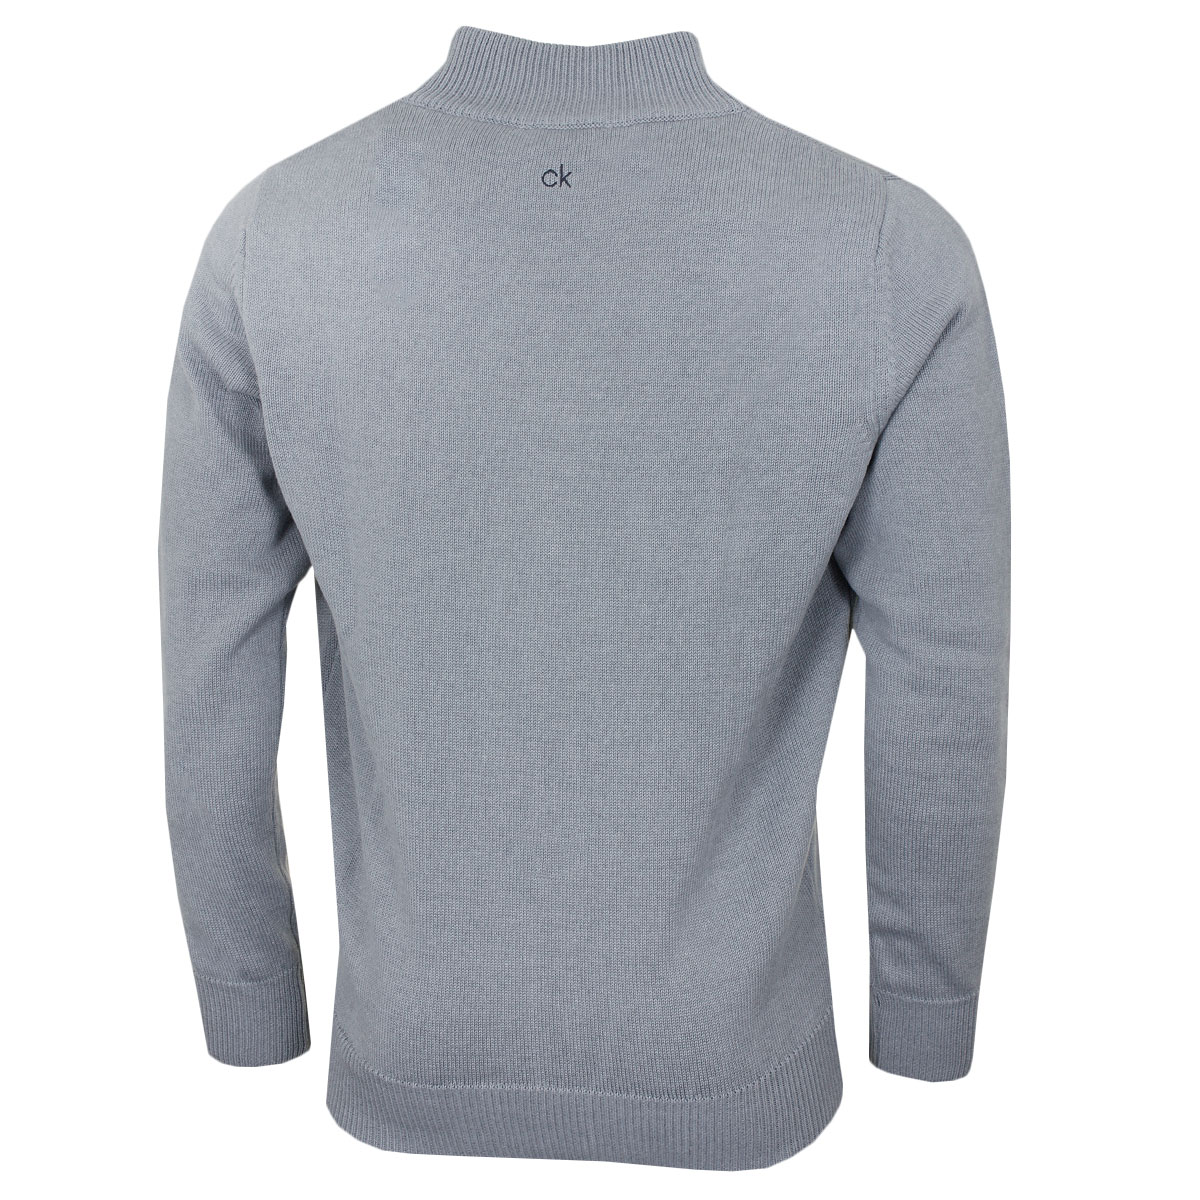 Calvin-Klein-Golf-Mens-2019-Chunky-Cotton-1-2-Zip-Golf-Top-Sweater-28-OFF-RRP thumbnail 50